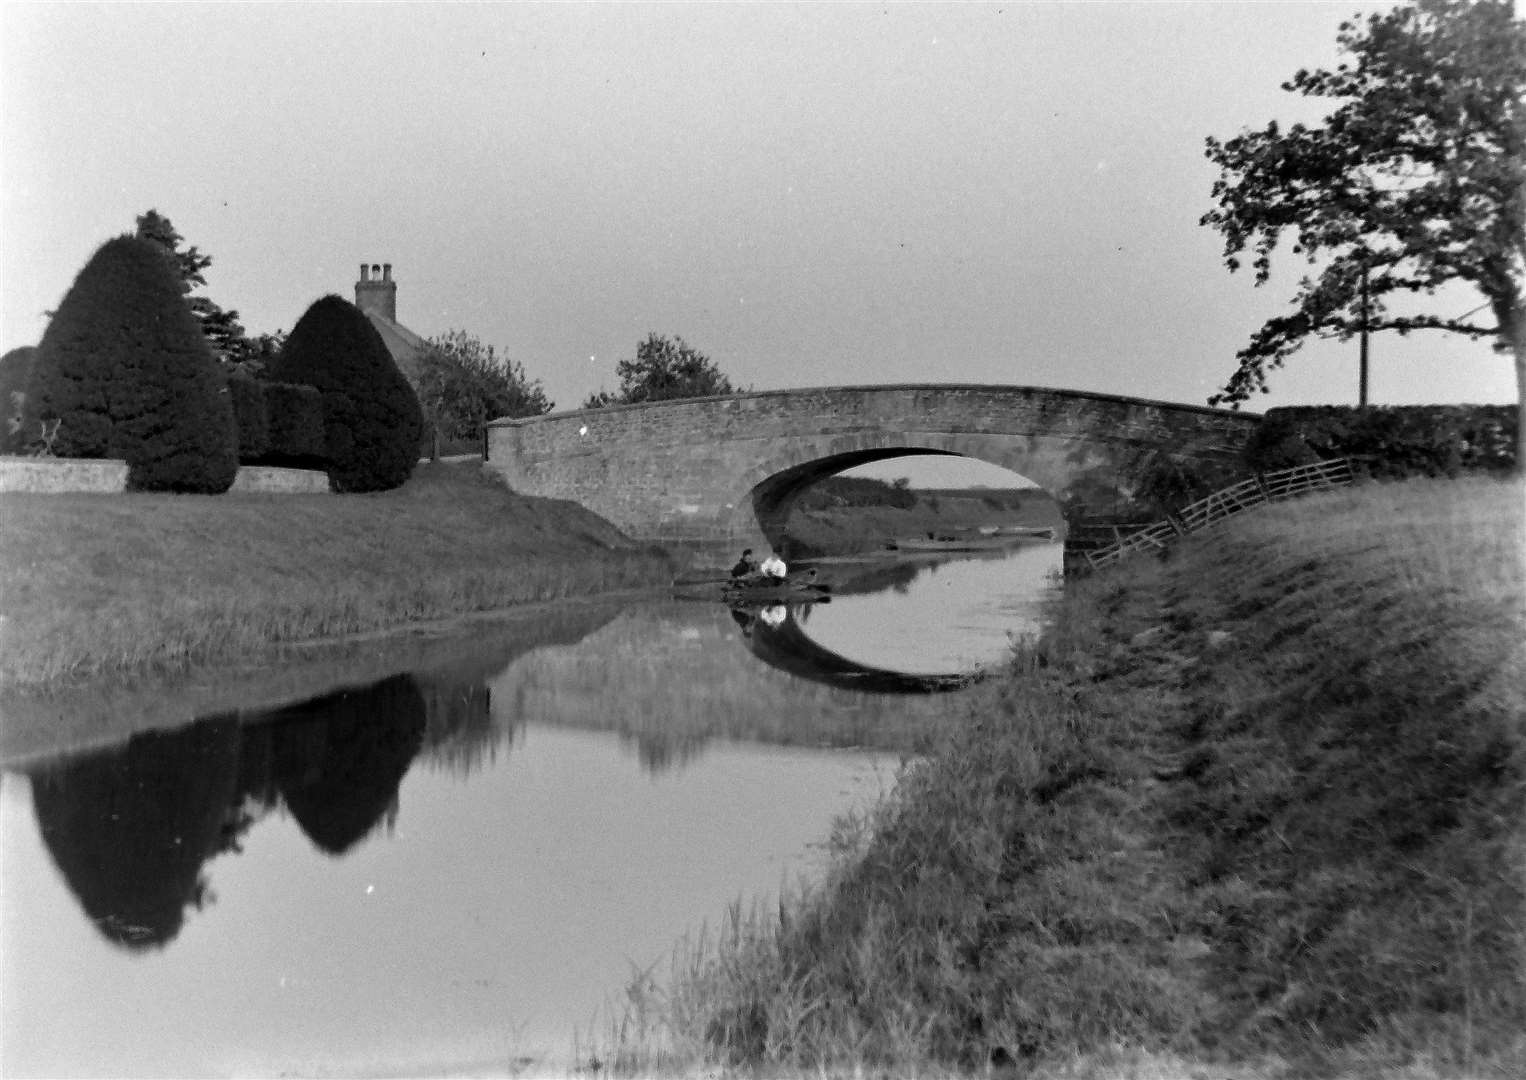 Sharpe's Bridge pictured at the turn of the 20th Century.